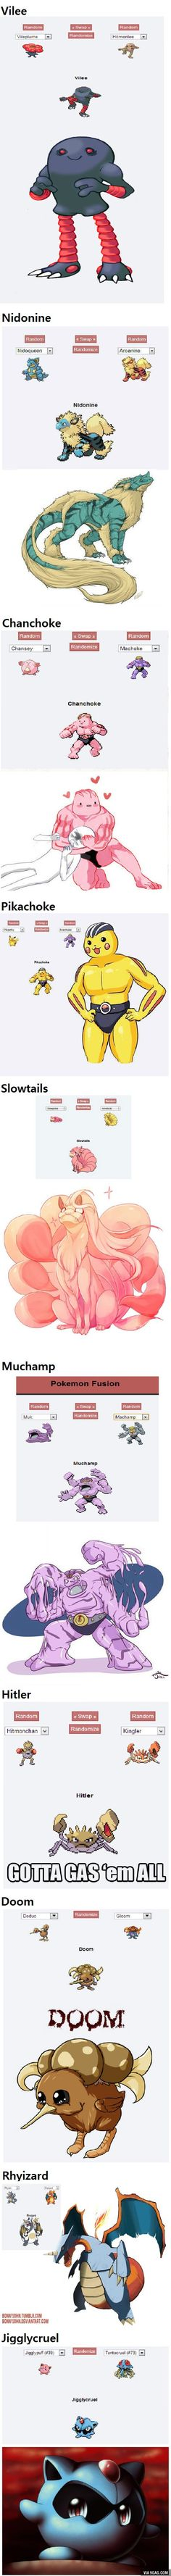 Hilarious Pokemon fusions part 2